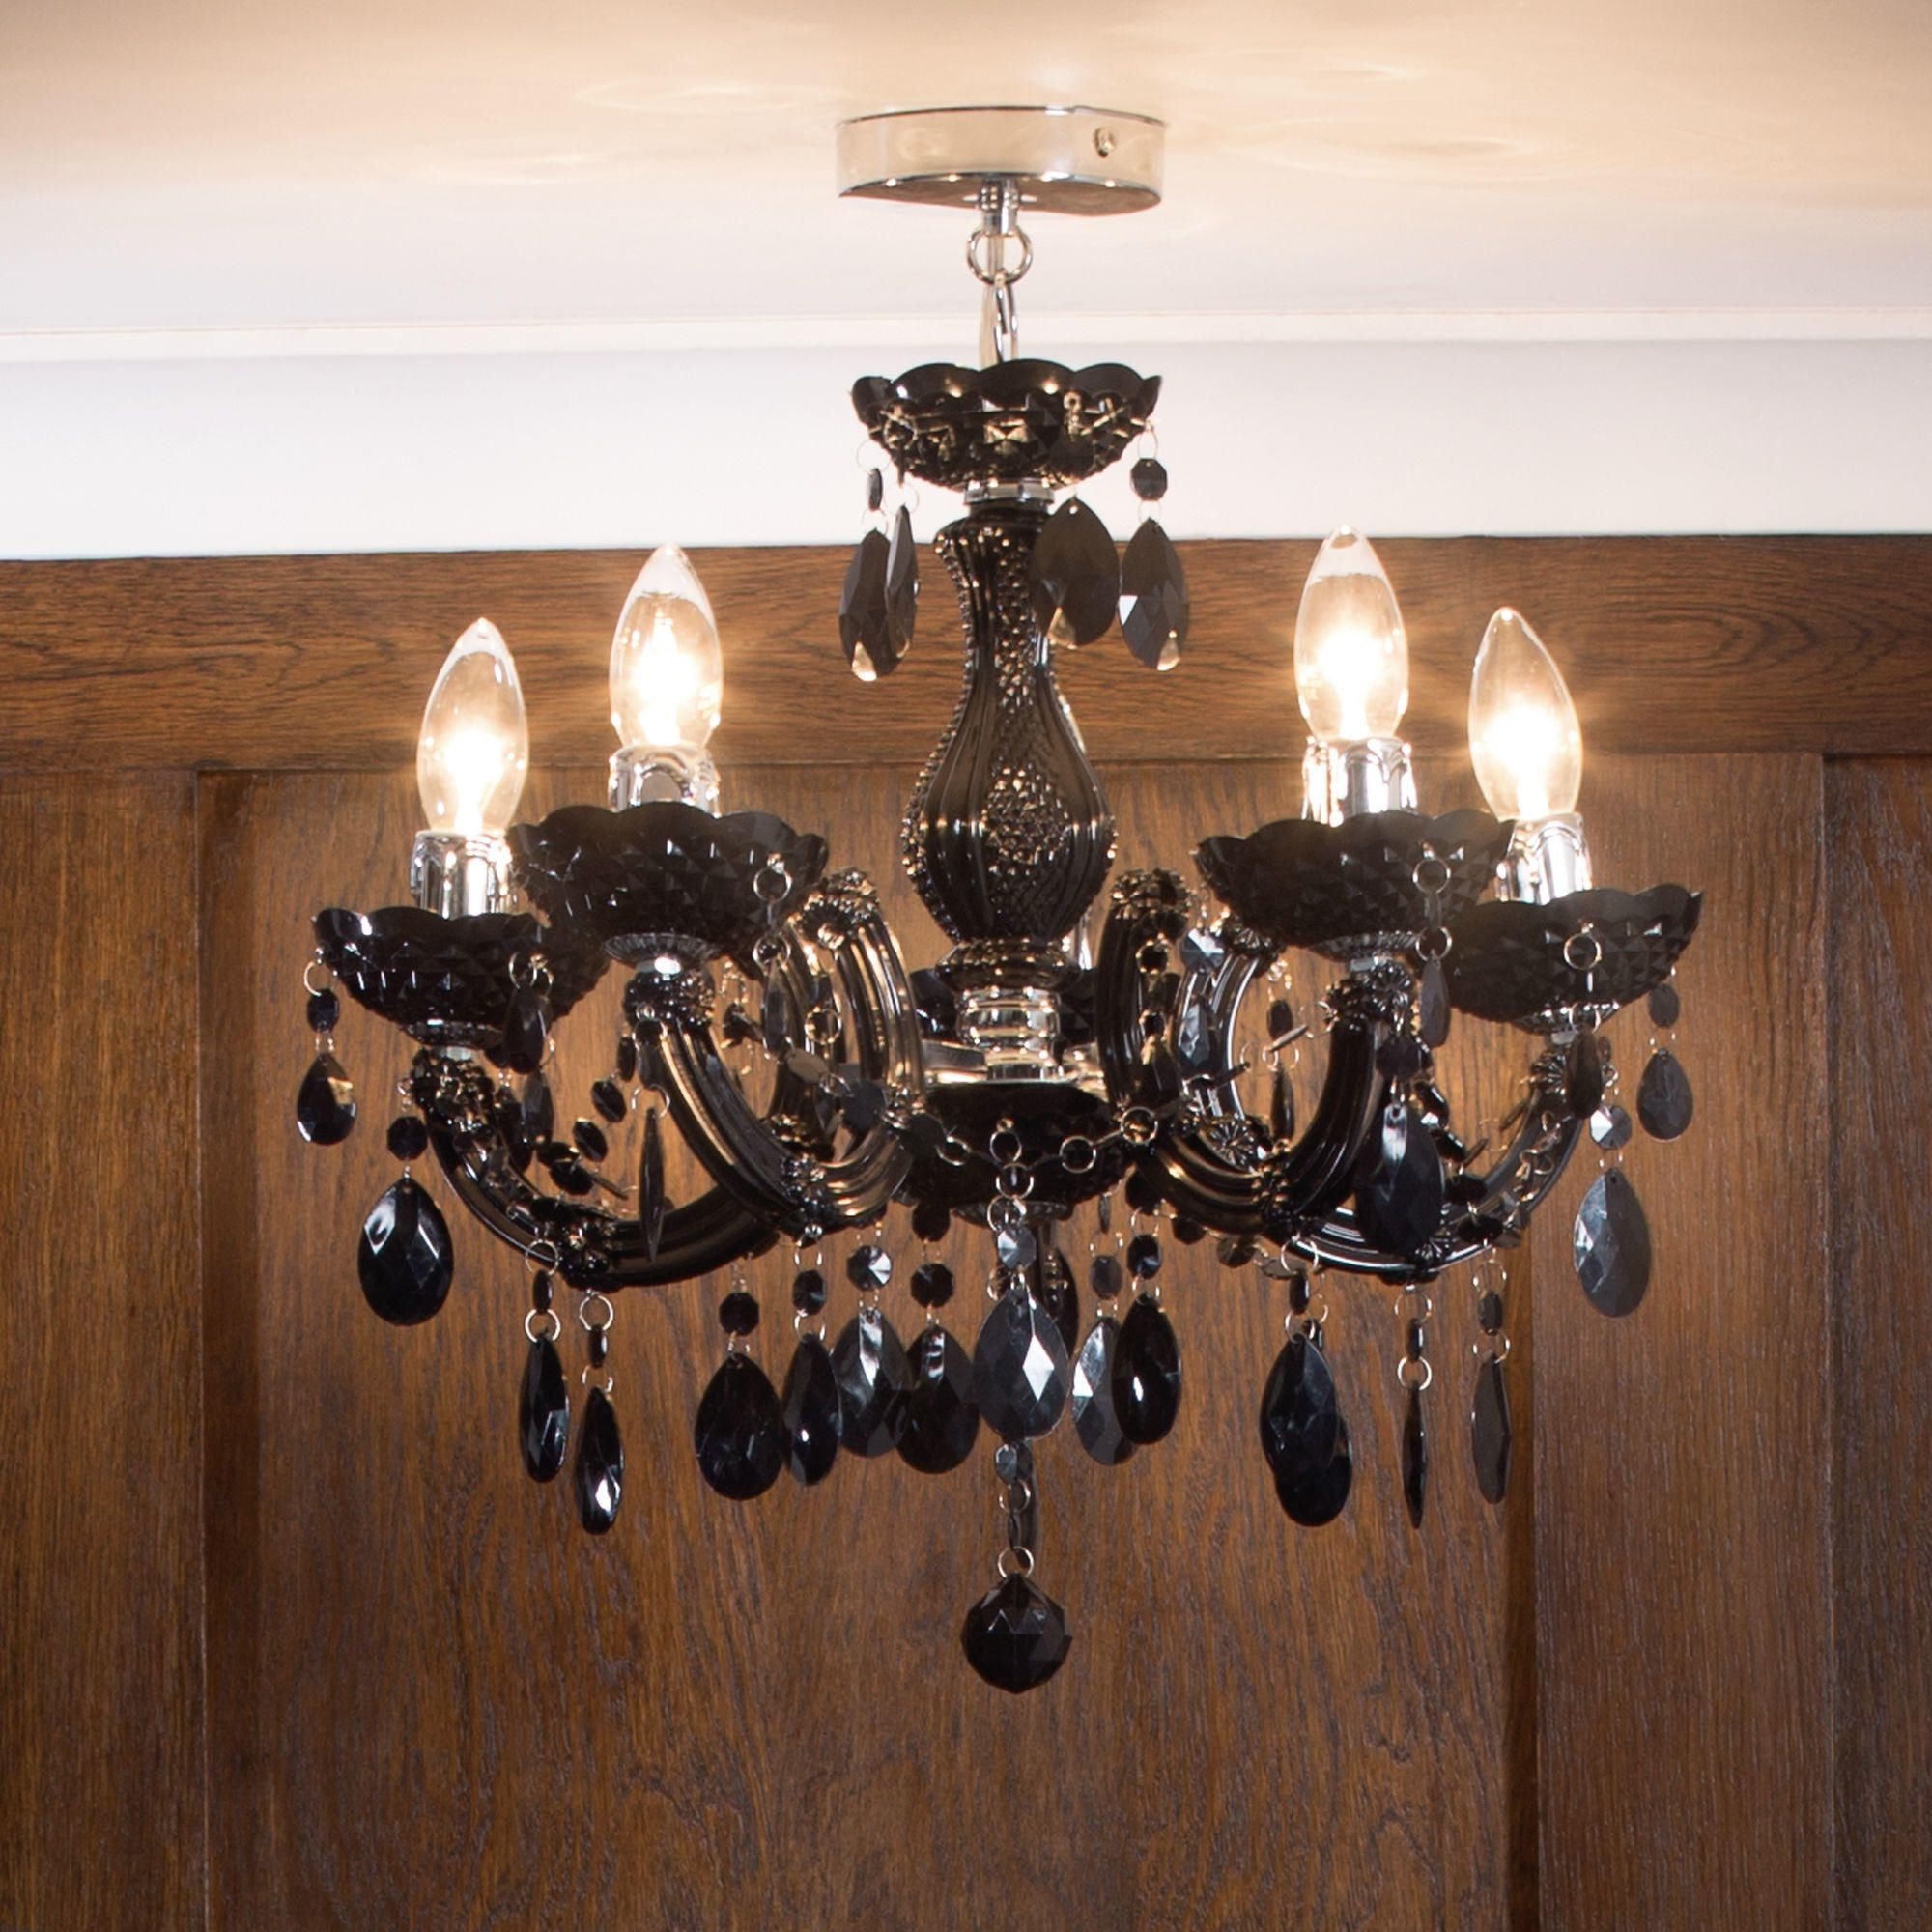 Low Ceiling Chandeliers Pertaining To Best And Newest Capricious Chandelier For Low Ceiling Best 25 Lighting Ideas On (View 9 of 20)